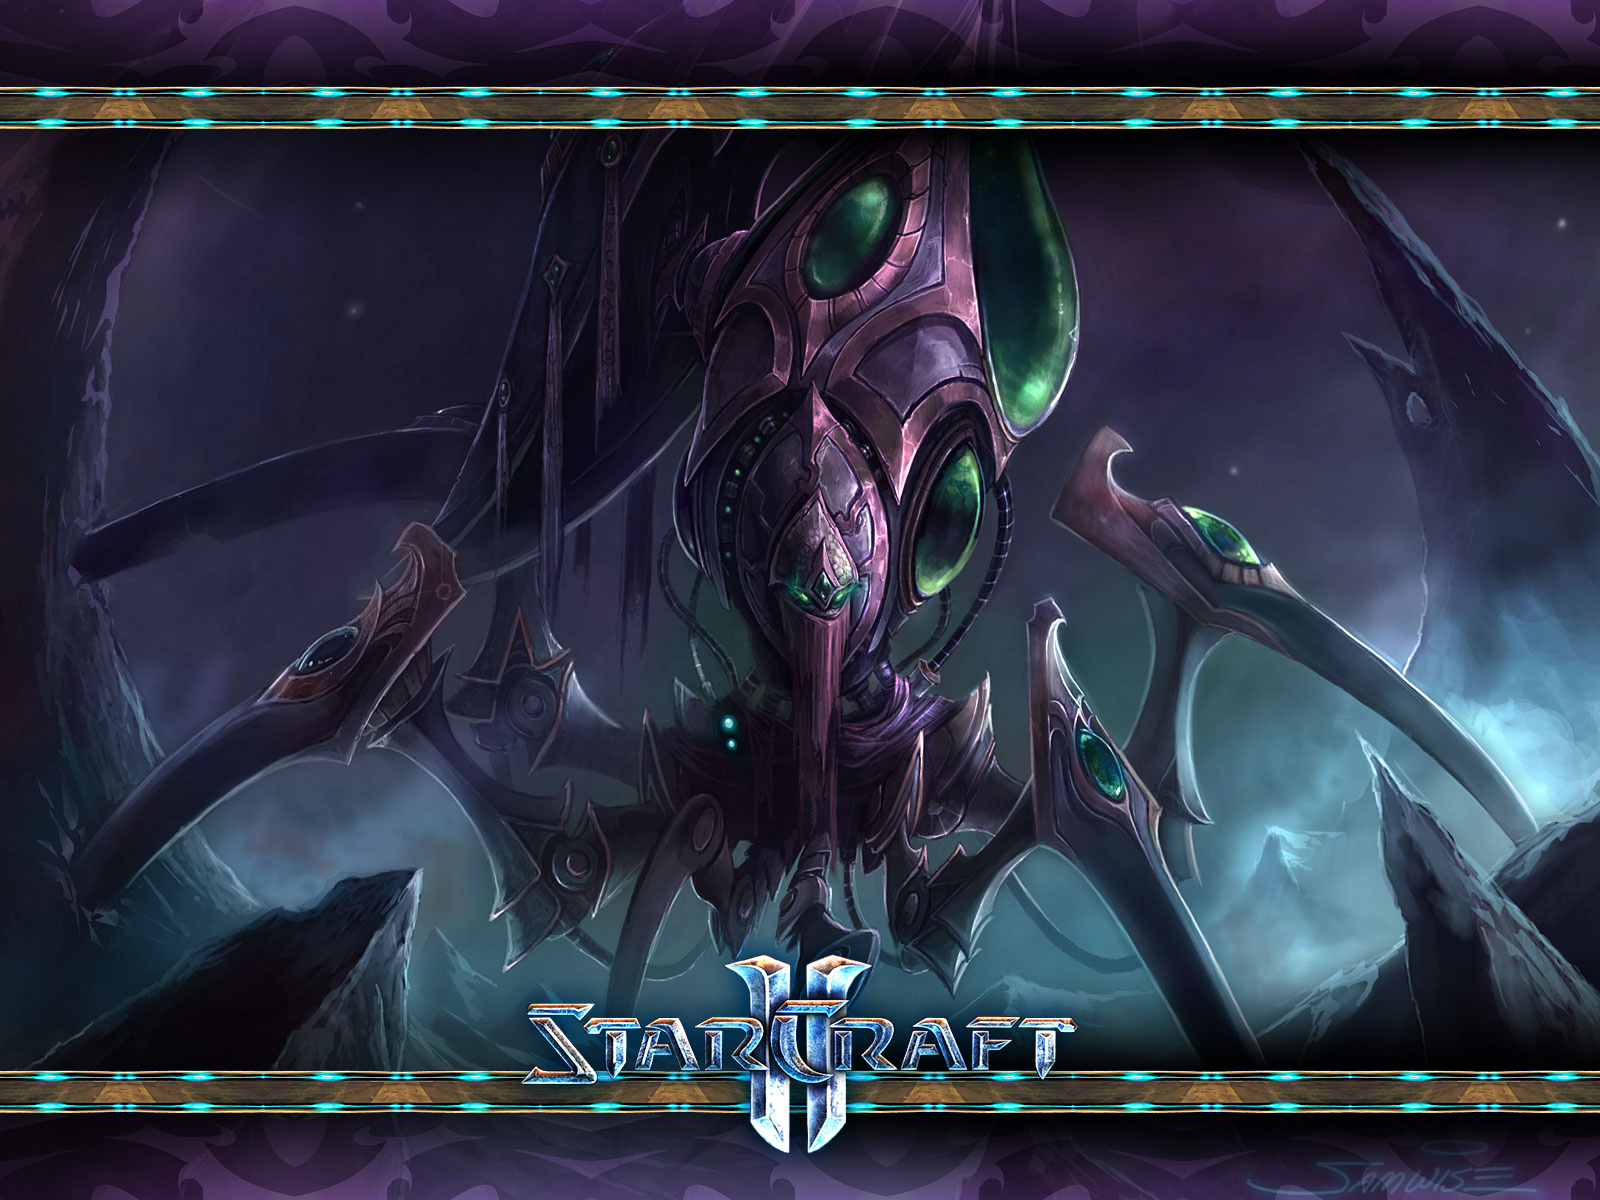 Starcraft 2 Hd Wallpaper Wallpaper